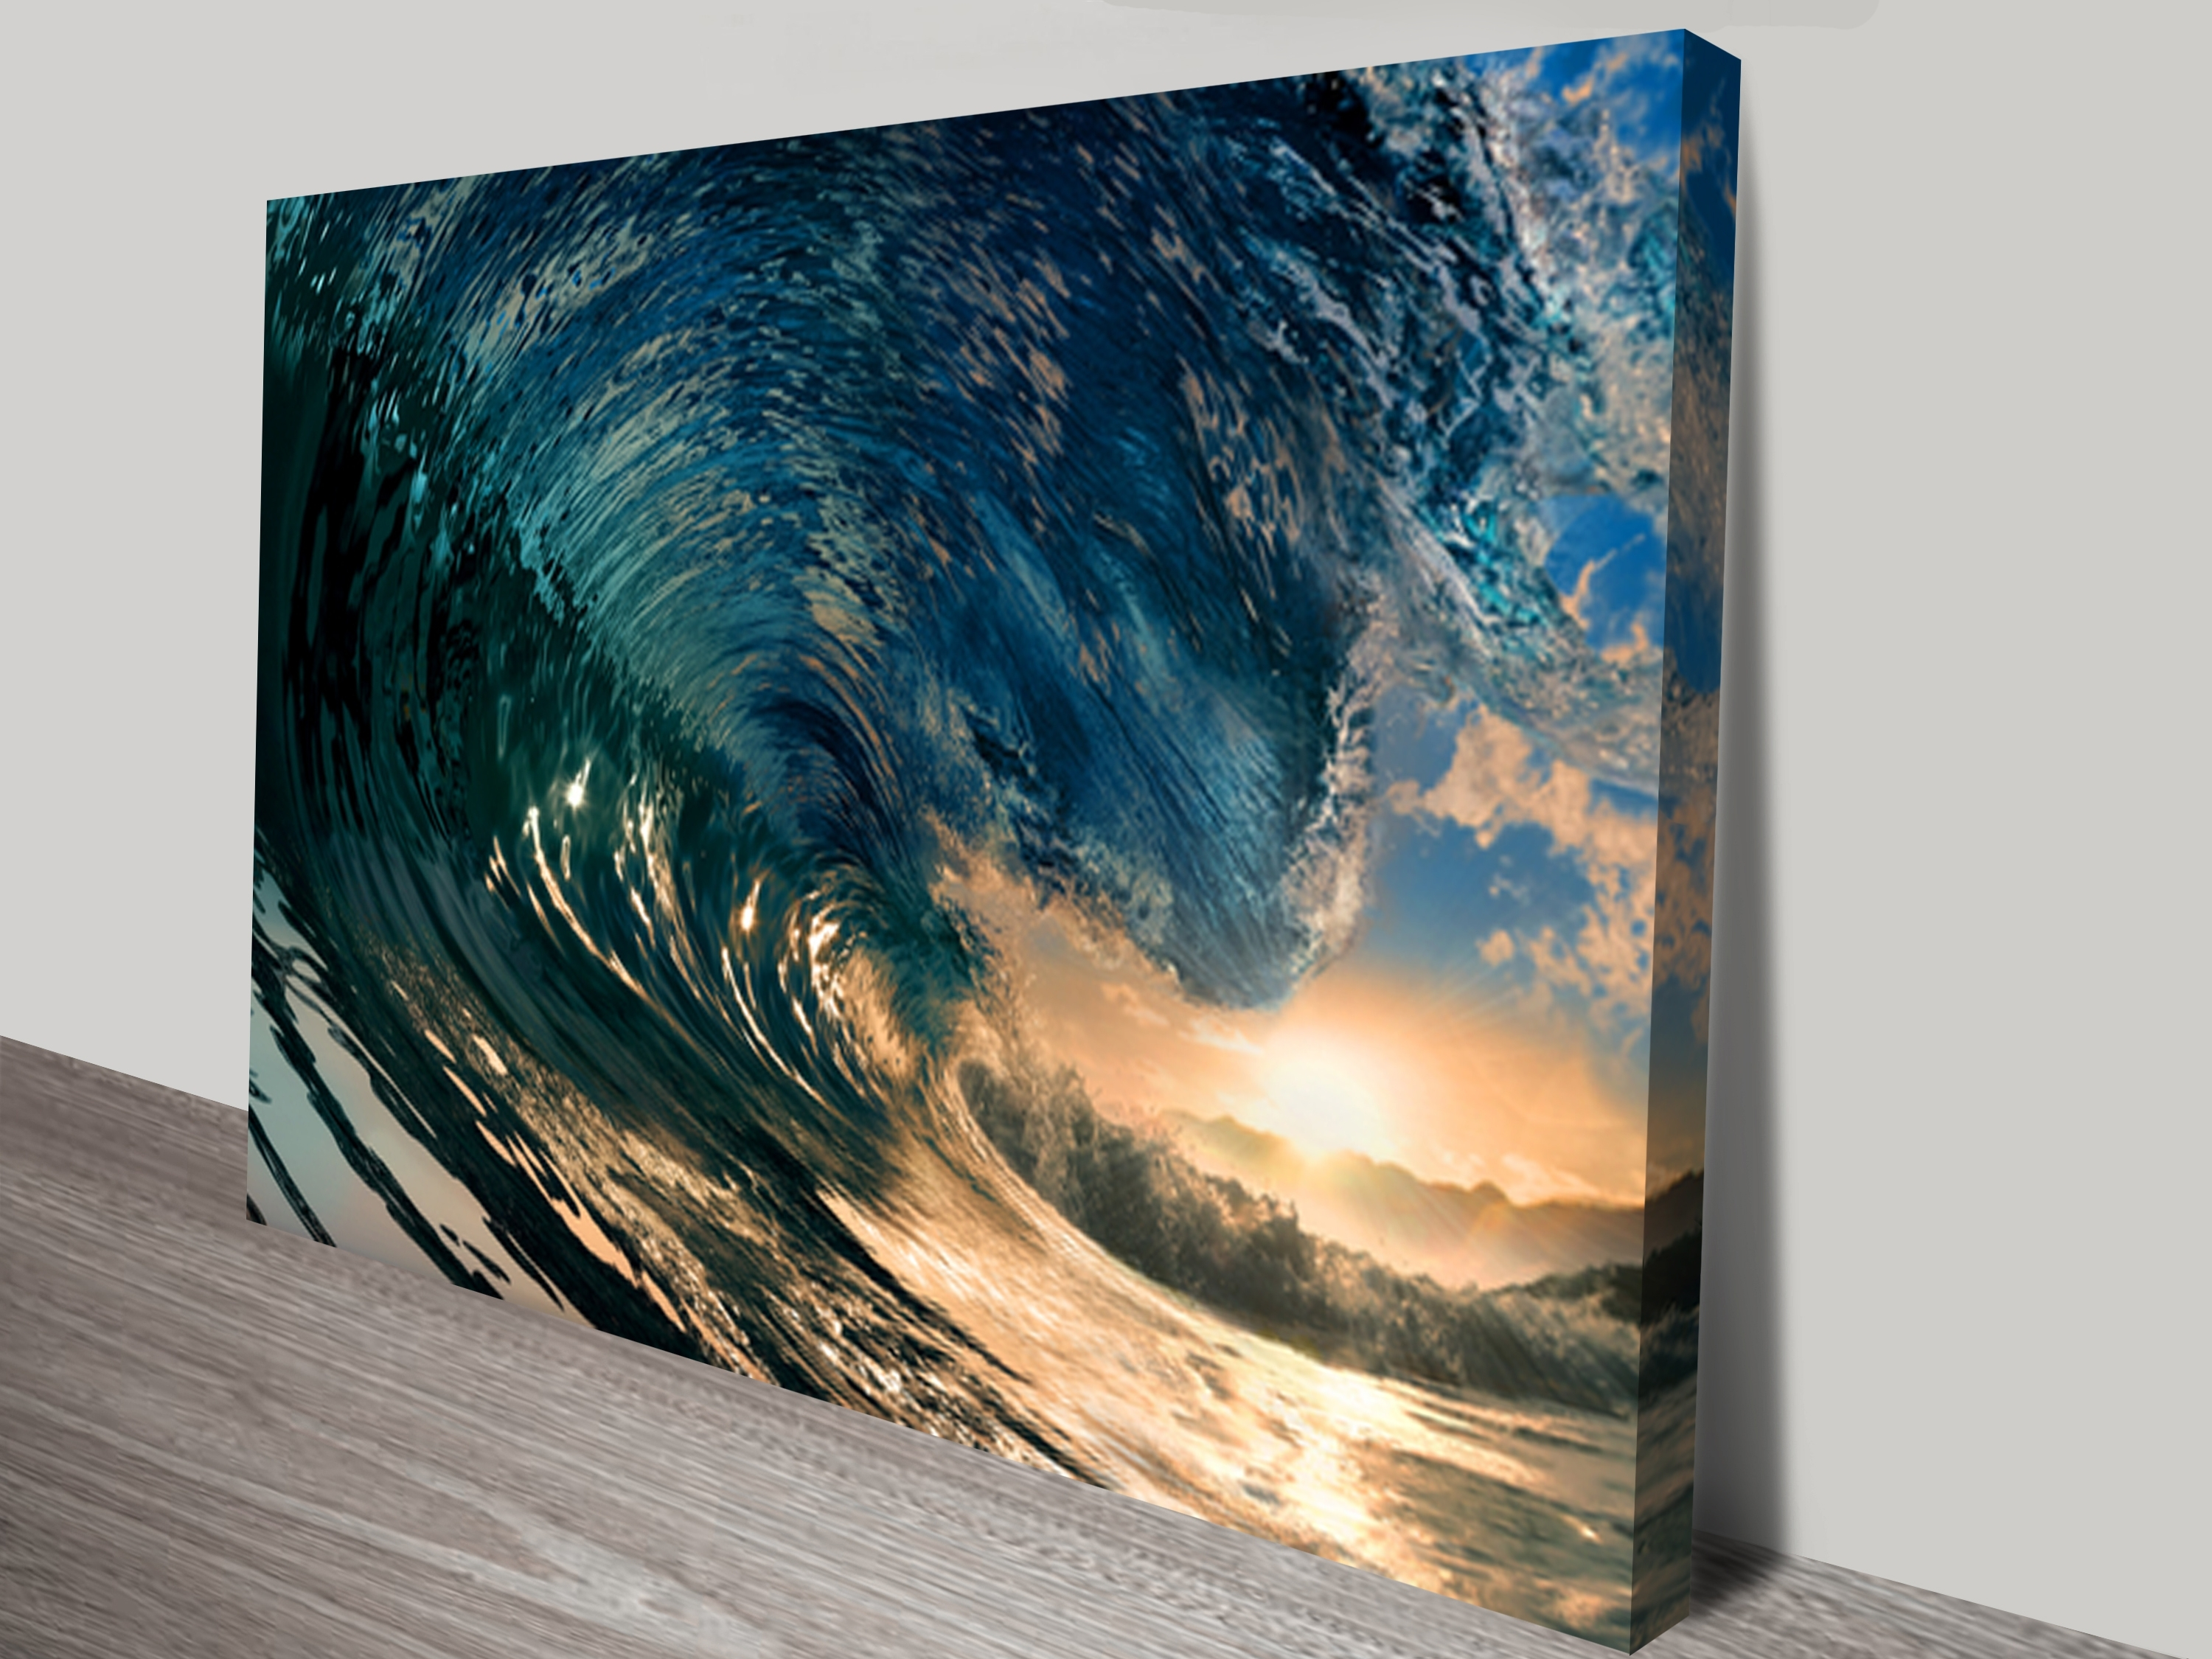 Crystal Waves Surfing Art Canvas Print | Sunset Wave Wall Art With Latest Canvas Wall Art In Melbourne (View 11 of 15)